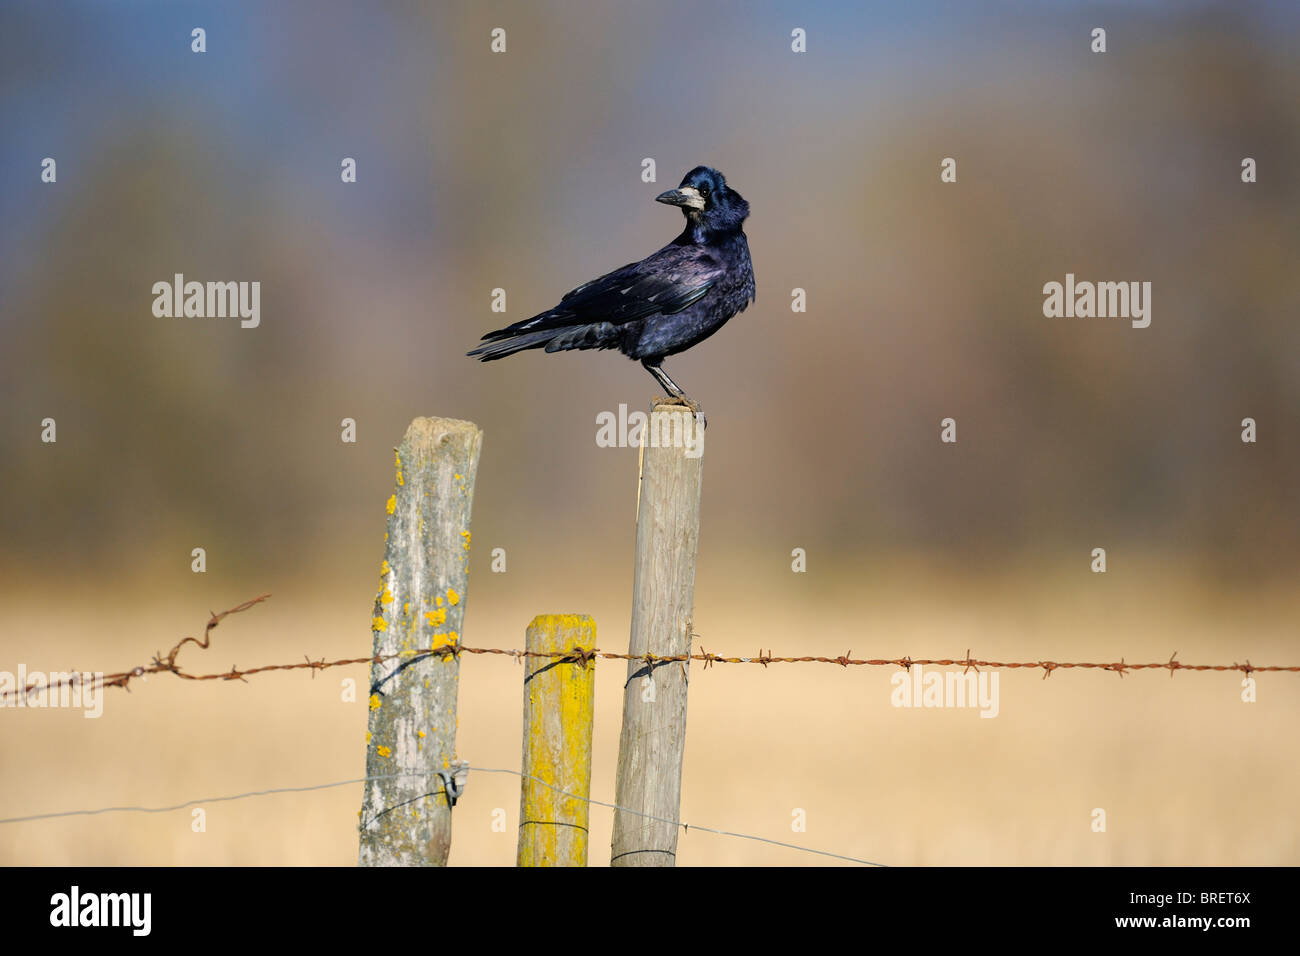 Rook (Corvus frugilegus) on a perch, pasture fence, Swabian Alb, Baden-Wuerttemberg, Germany, Europe - Stock Image